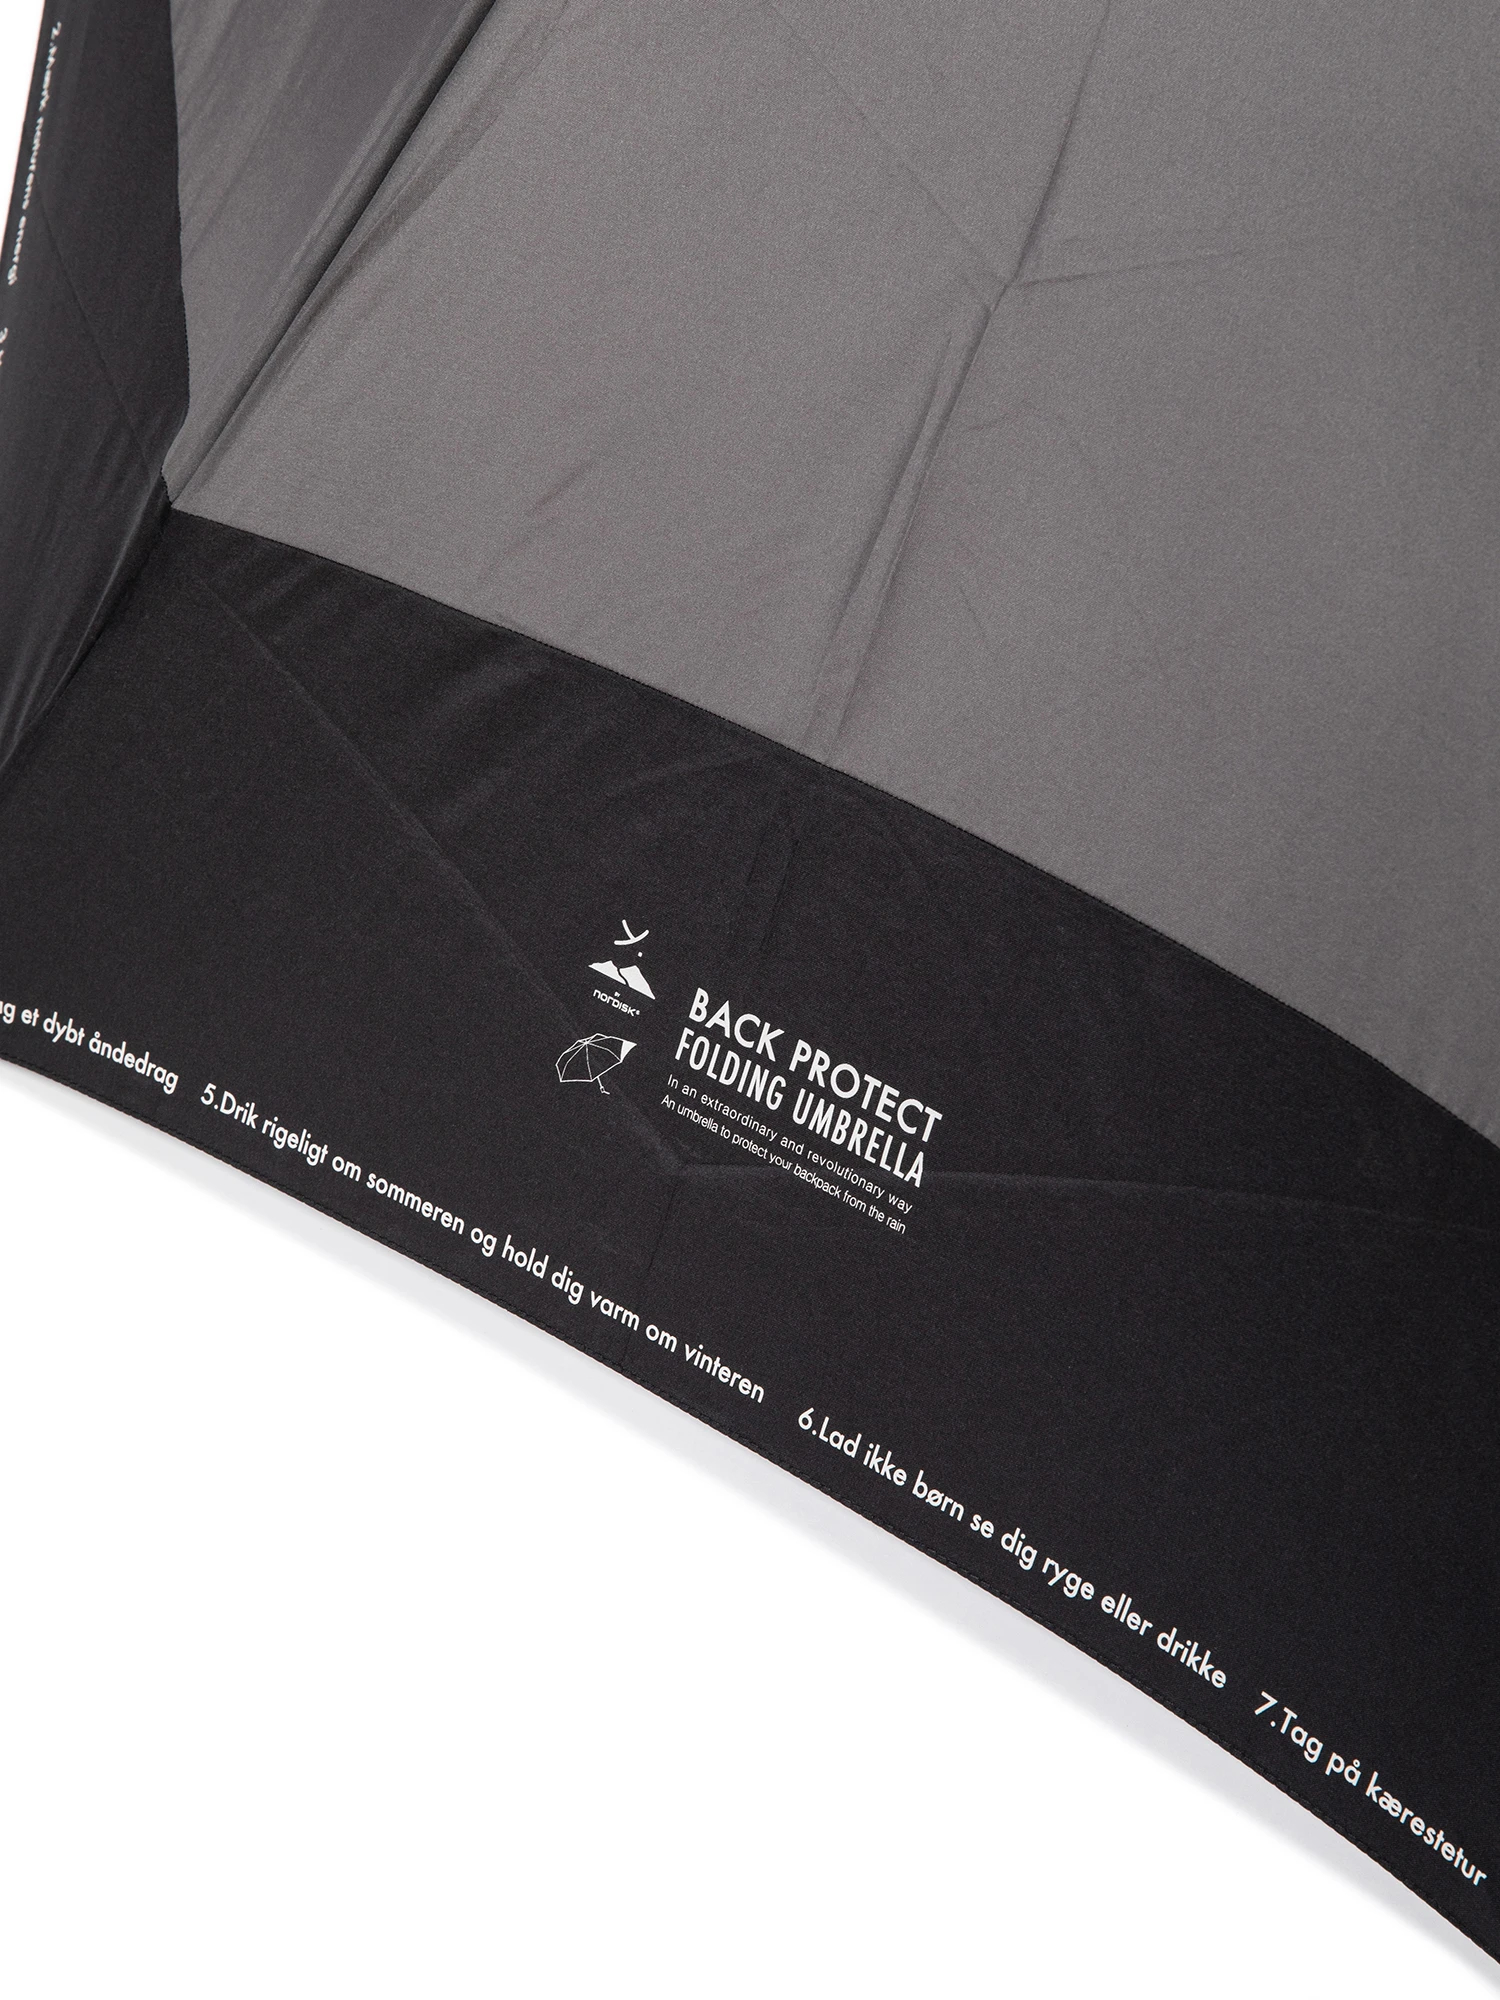 Yeti(イエティ) |BACK PROTECT FOLDING UMBRELLA